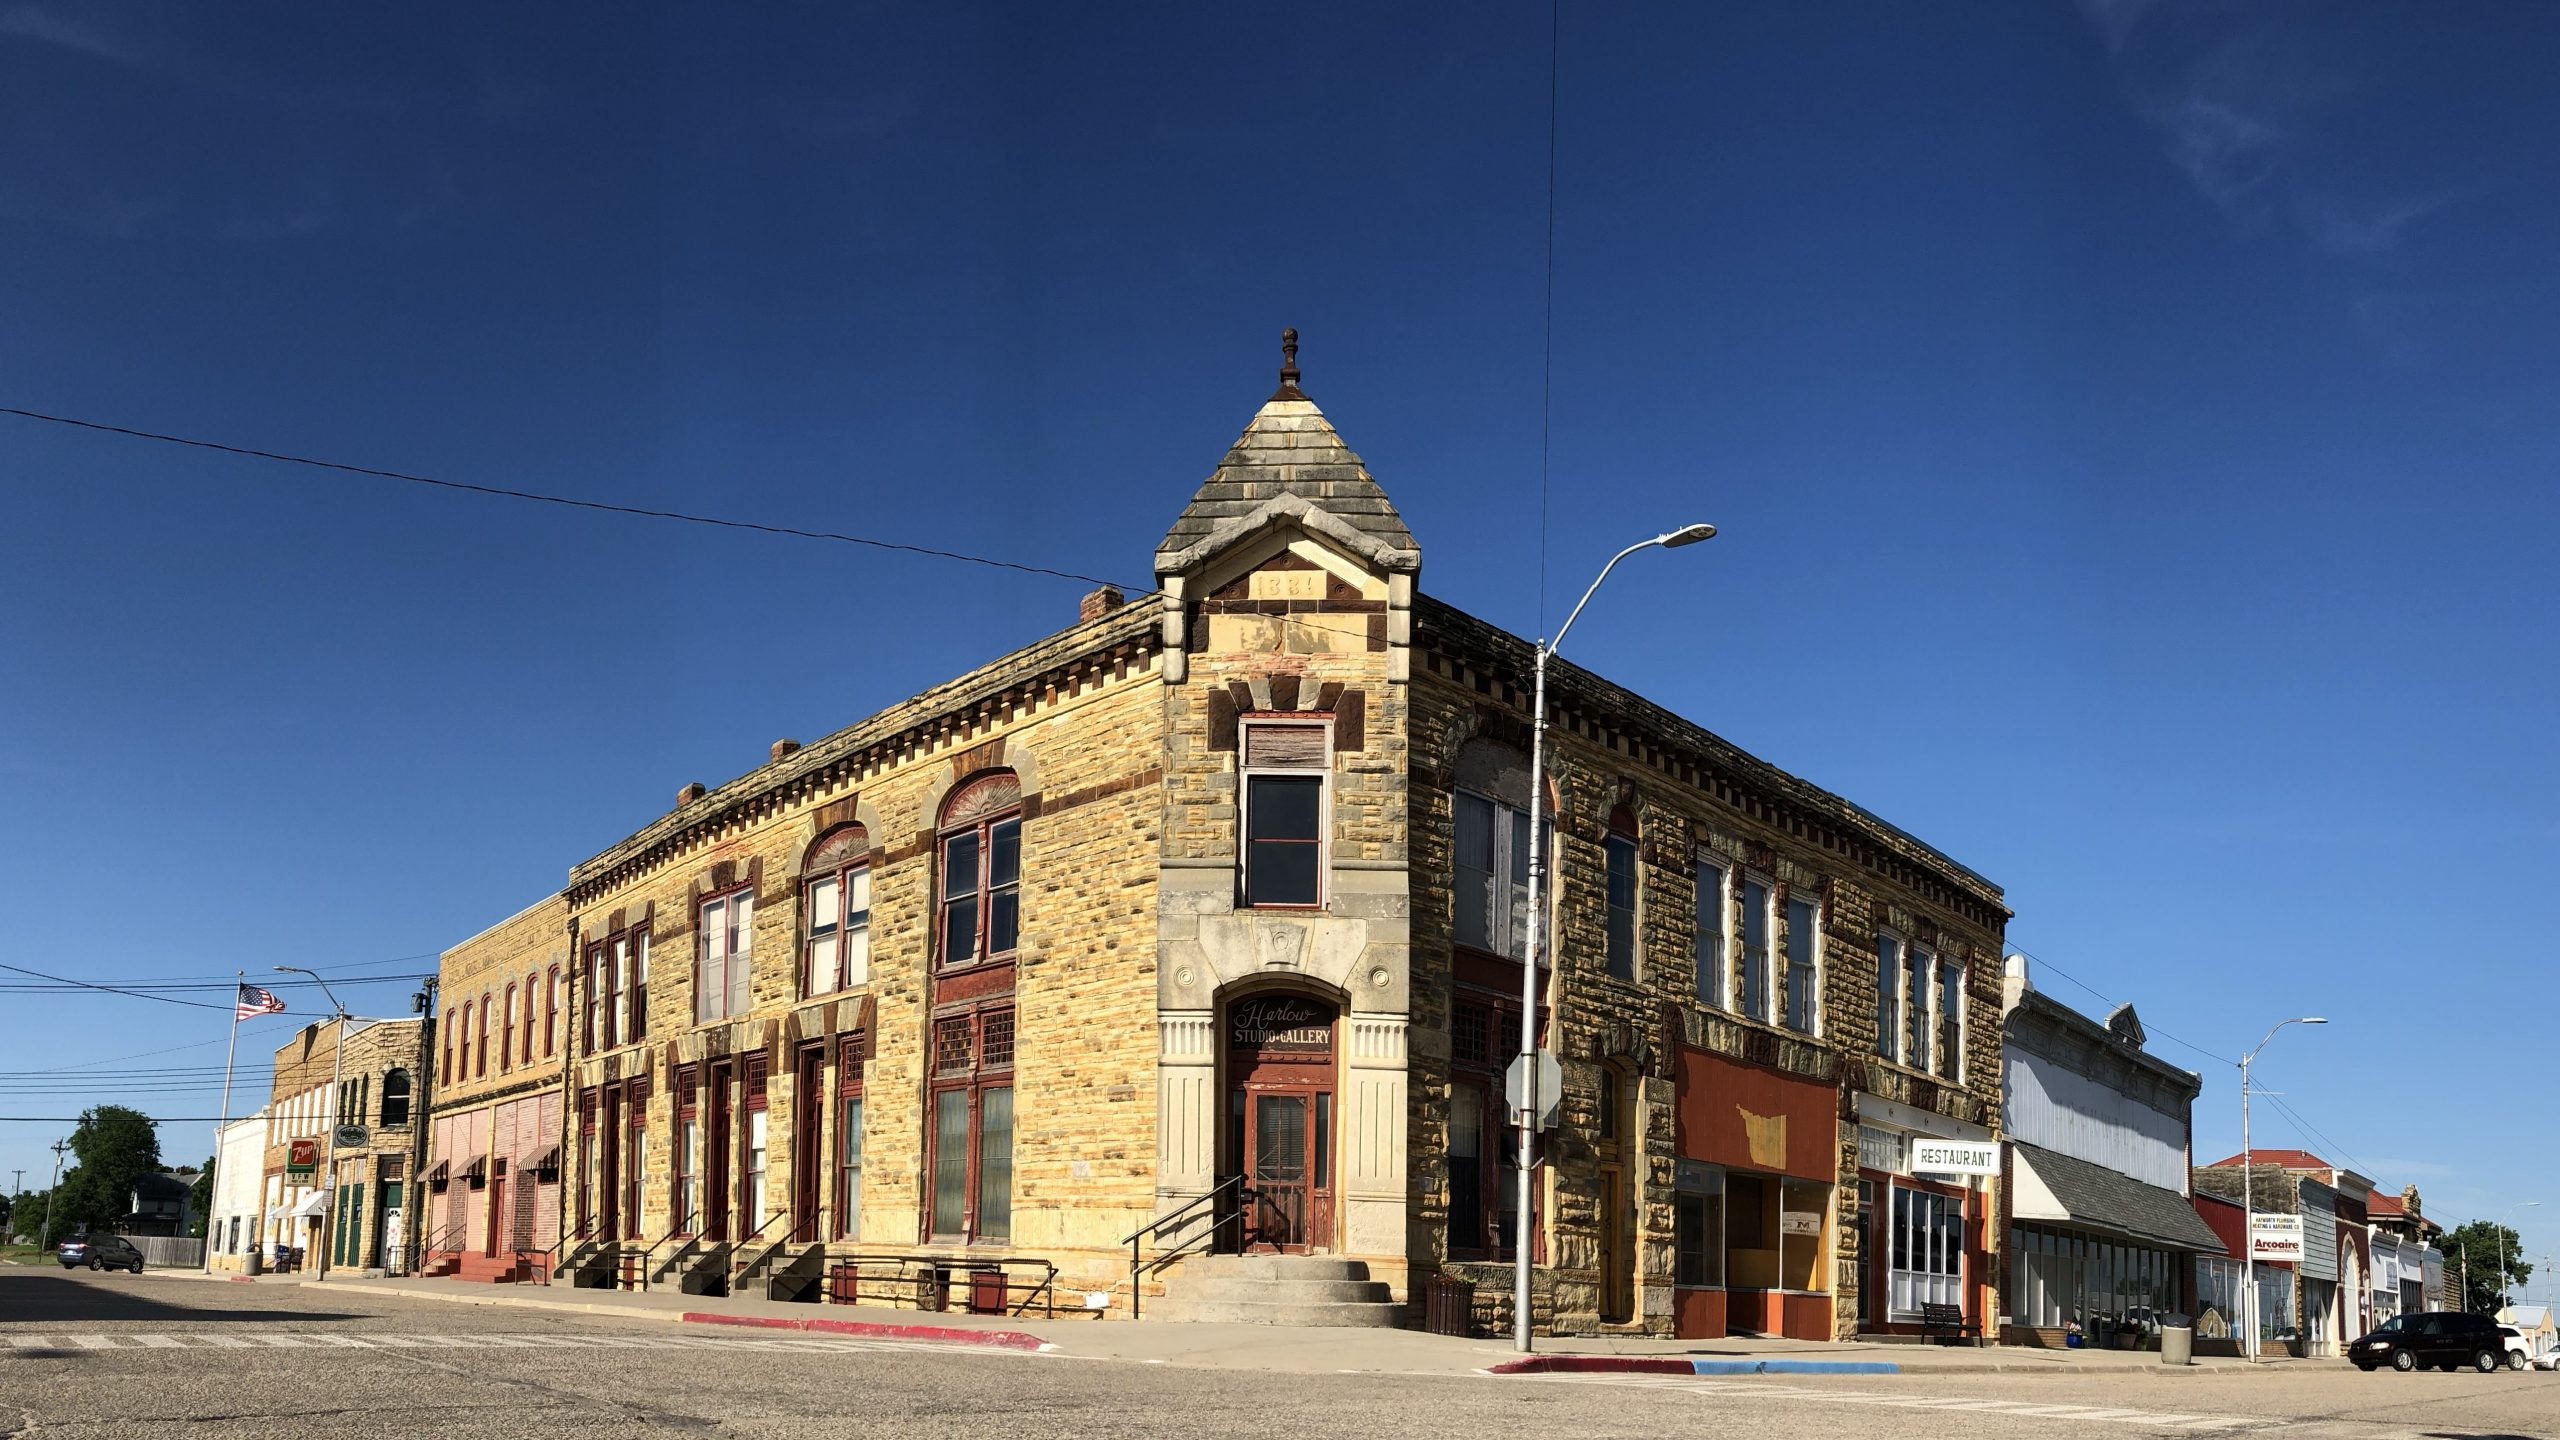 Downtown Lincoln listed in the National Register of Historic Places